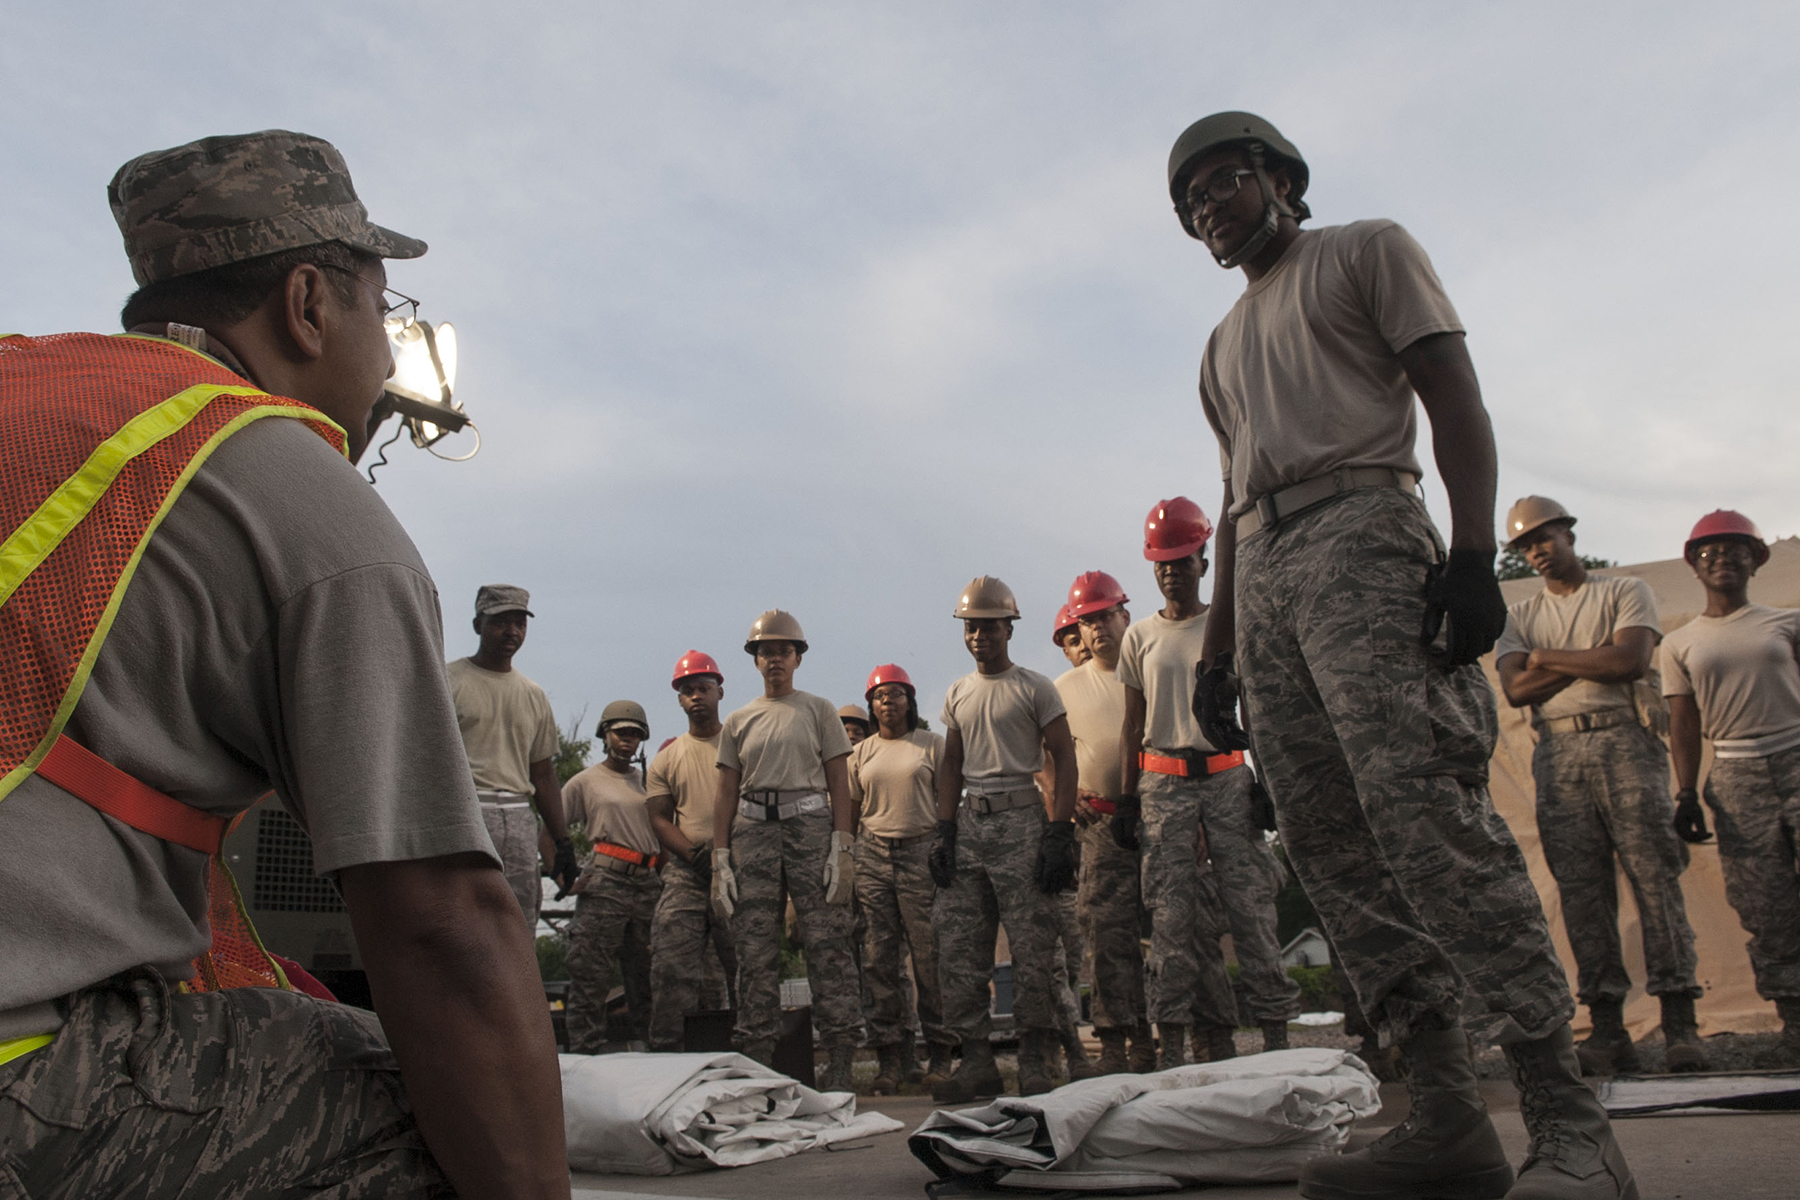 307th Force Support Squadron completes annual training